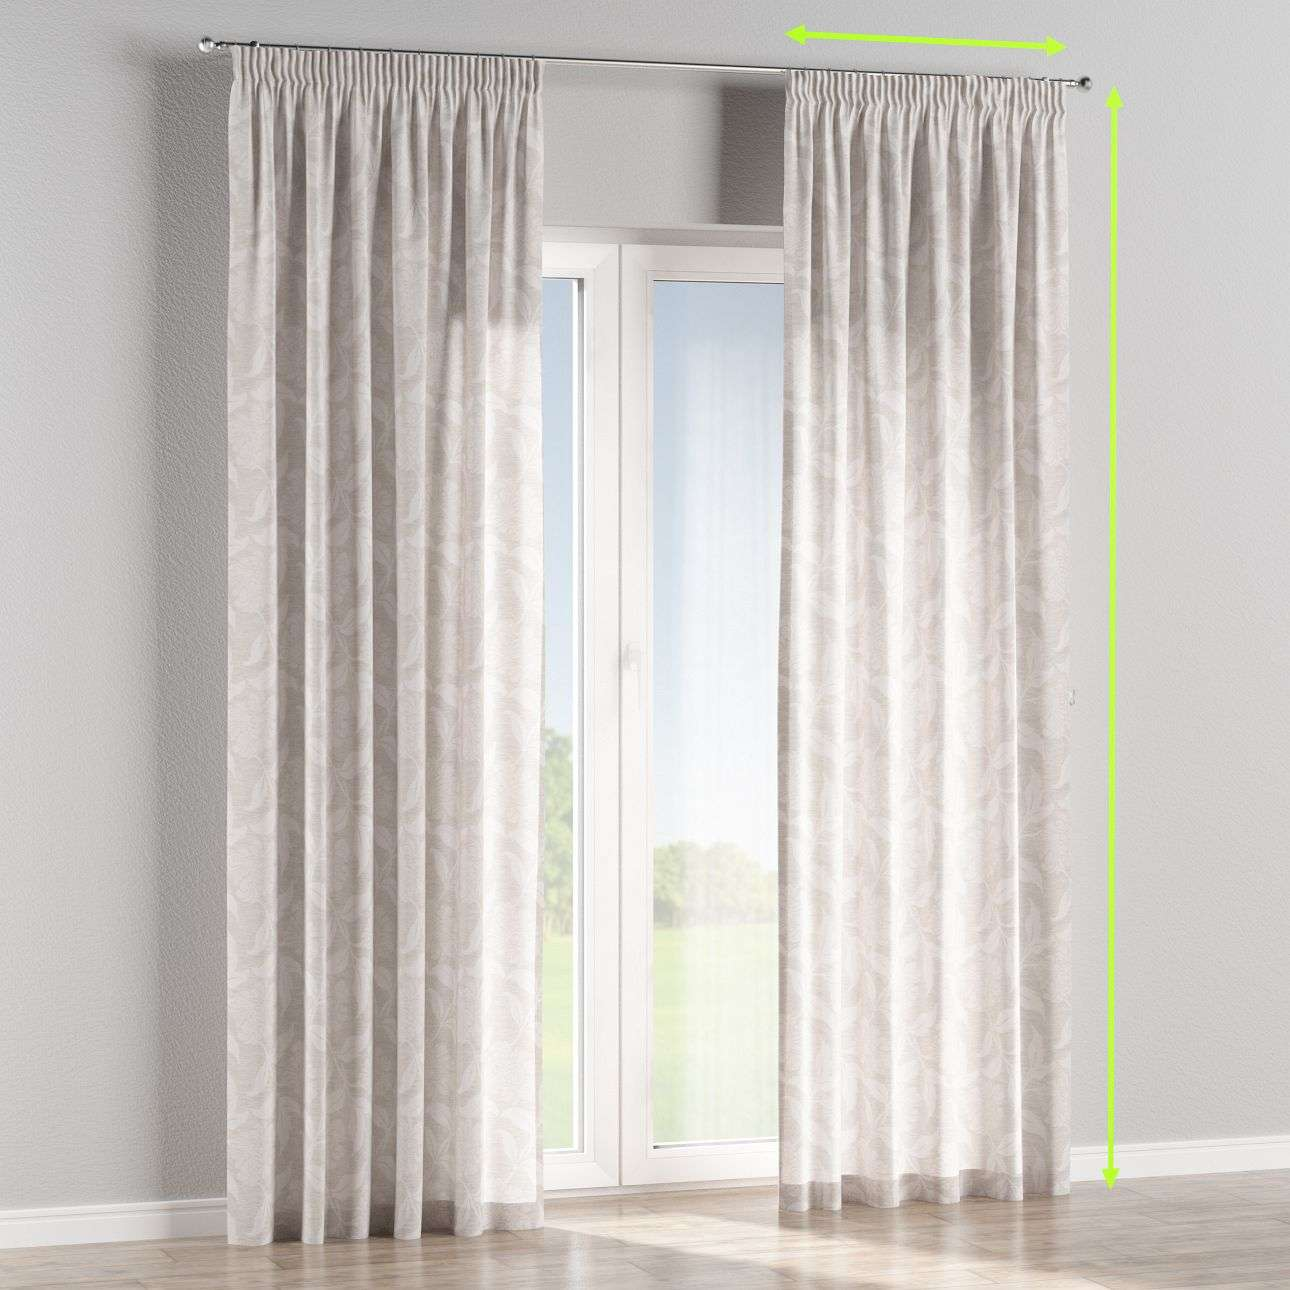 Pencil pleat curtain in collection Venice, fabric: 140-51